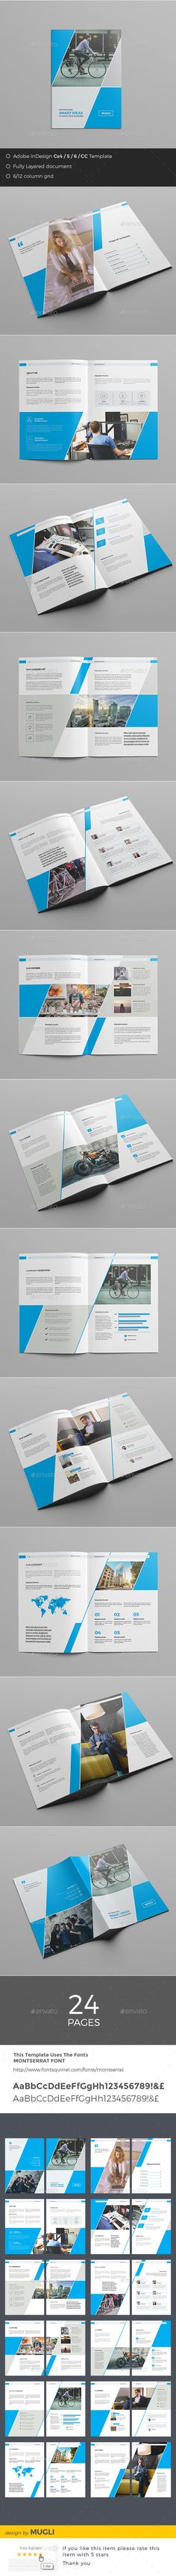 Corporate Brochure  — InDesign Template #modern #identity • Download ➝ https://graphicriver.net/item/corporate-brochure/18012551?ref=pxcr